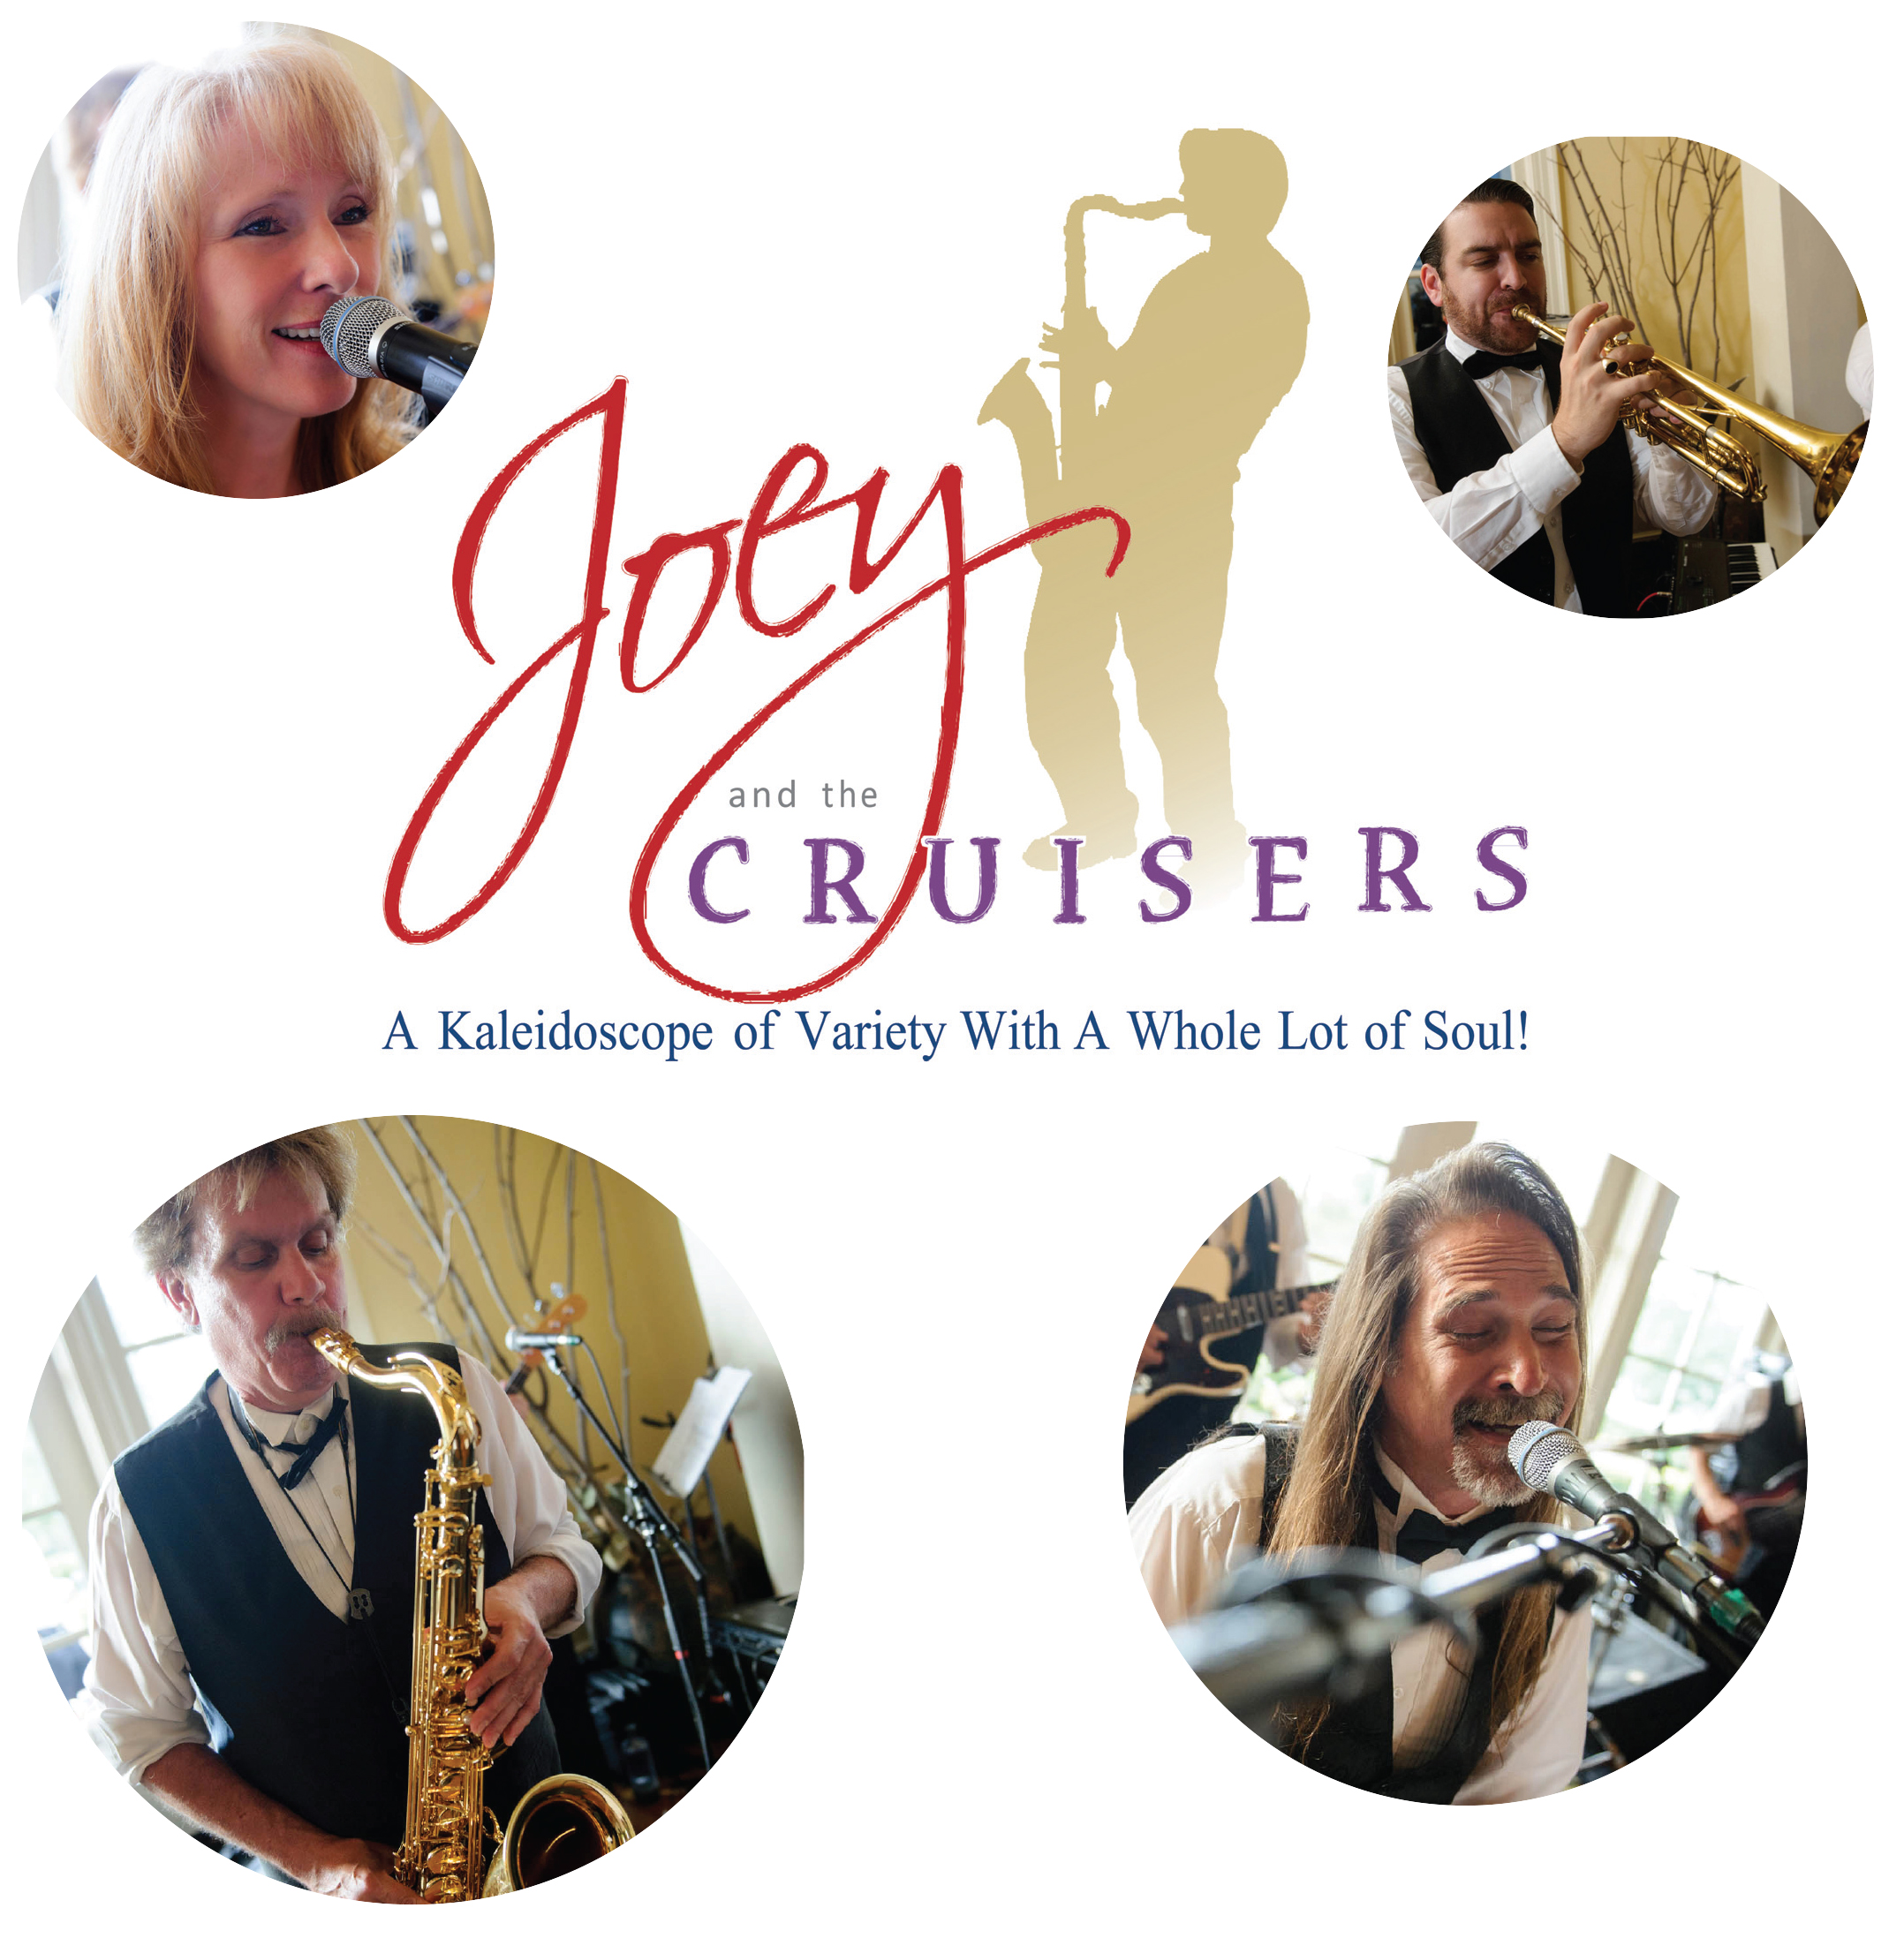 Joey and the Cruisers Band